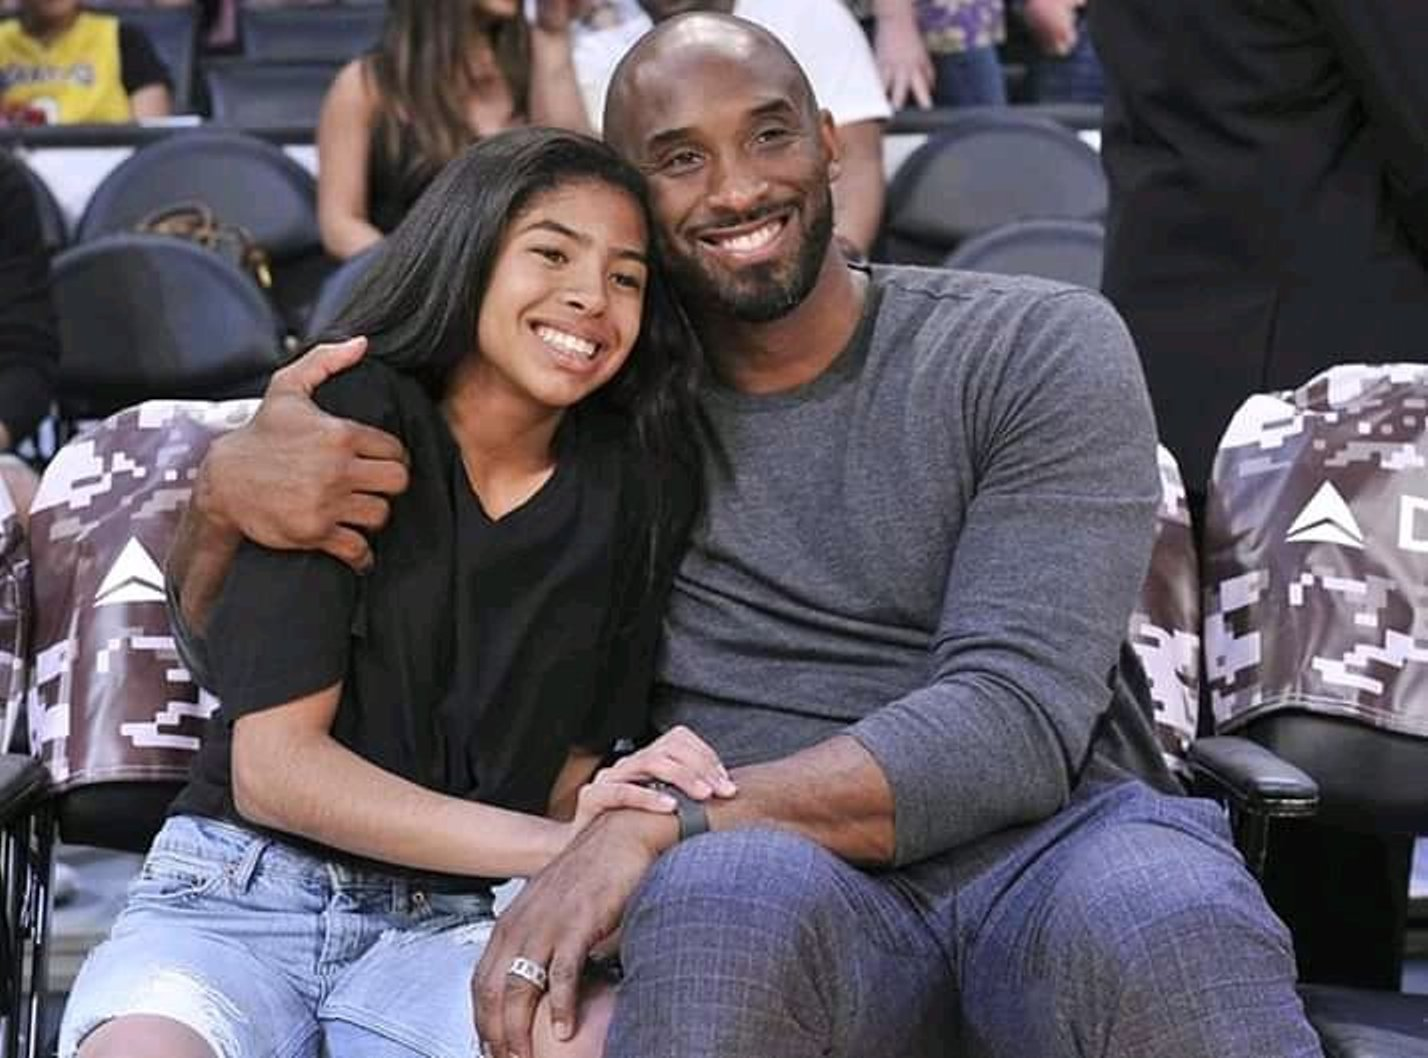 Bryant's 13-year-old daughter Gianna also died in the helicopter crash. Photo courtesy: Twitter